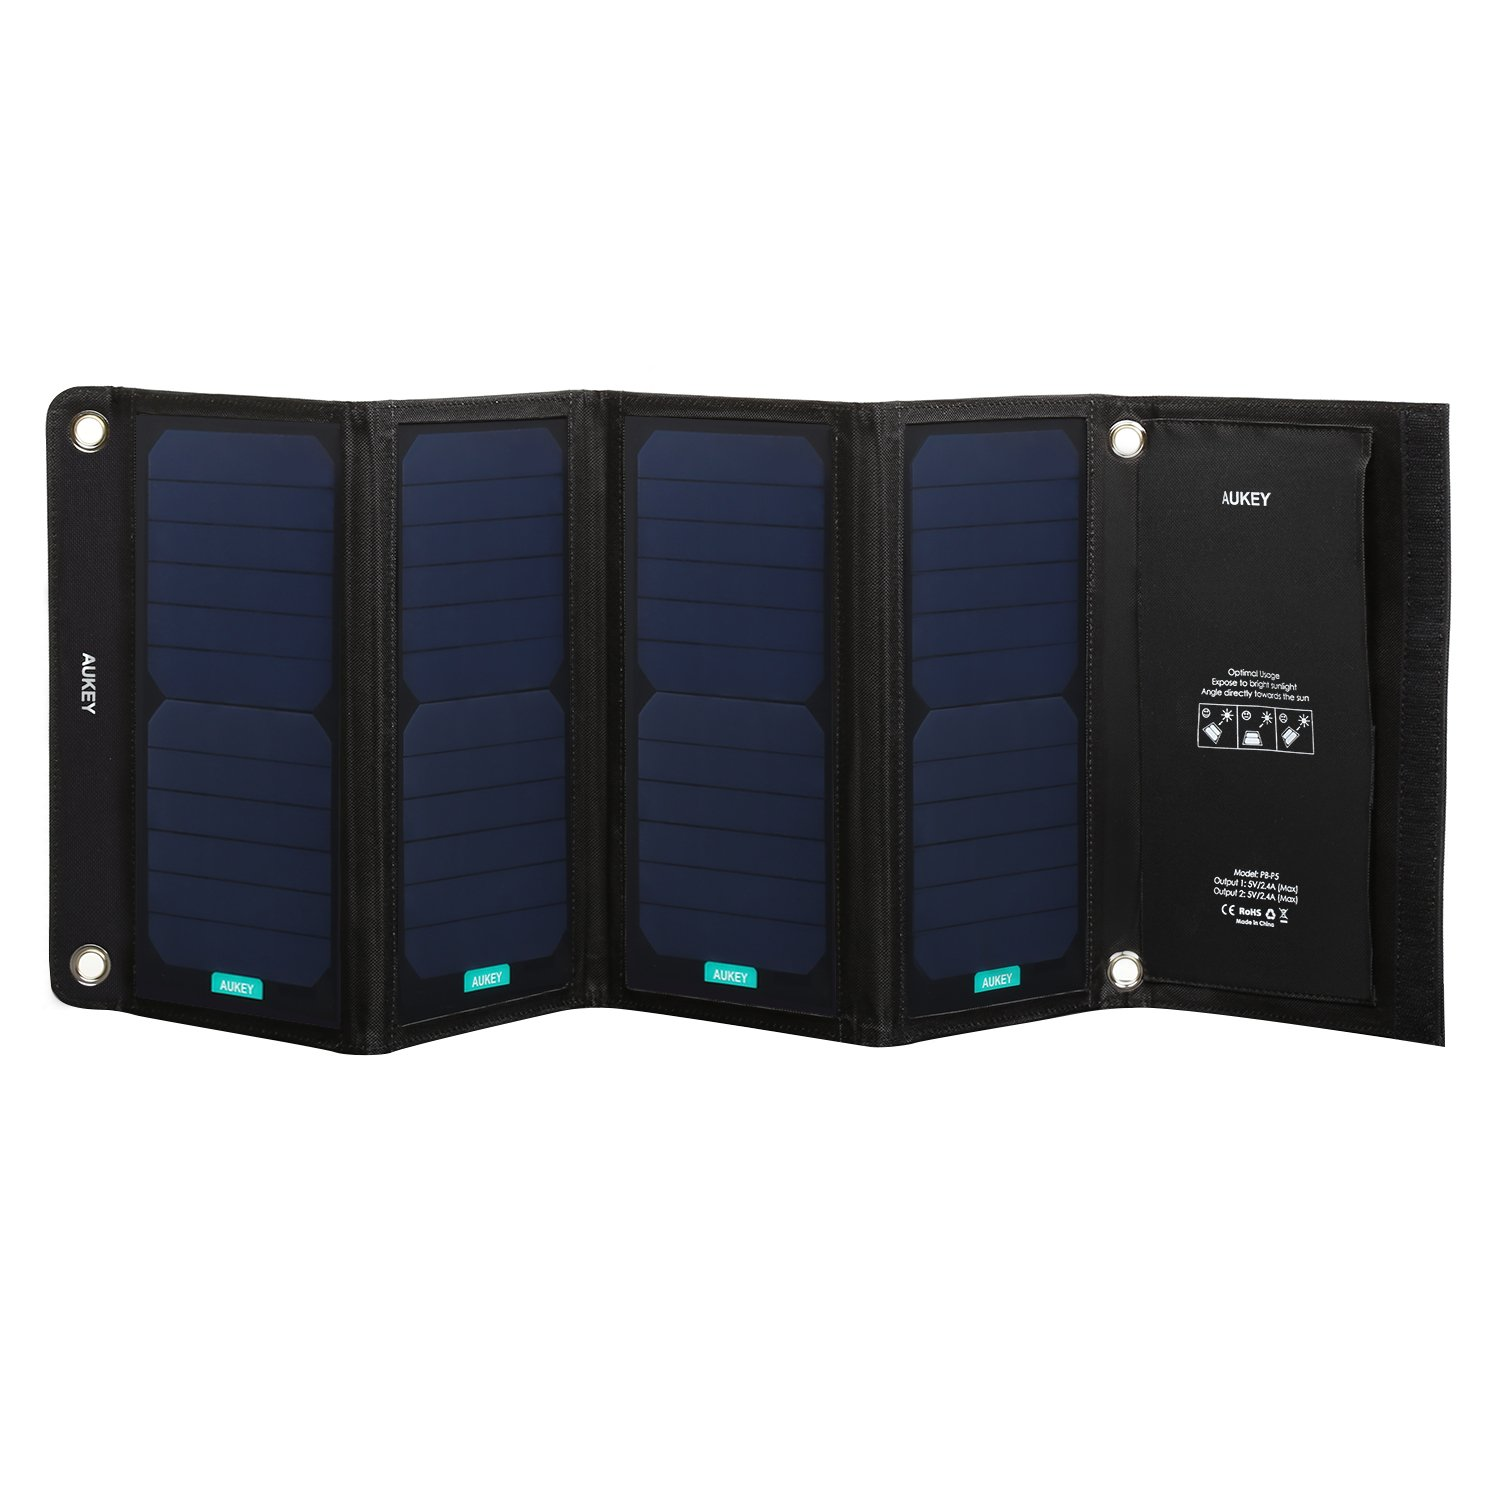 AUKEY-28W-Solar-Charger